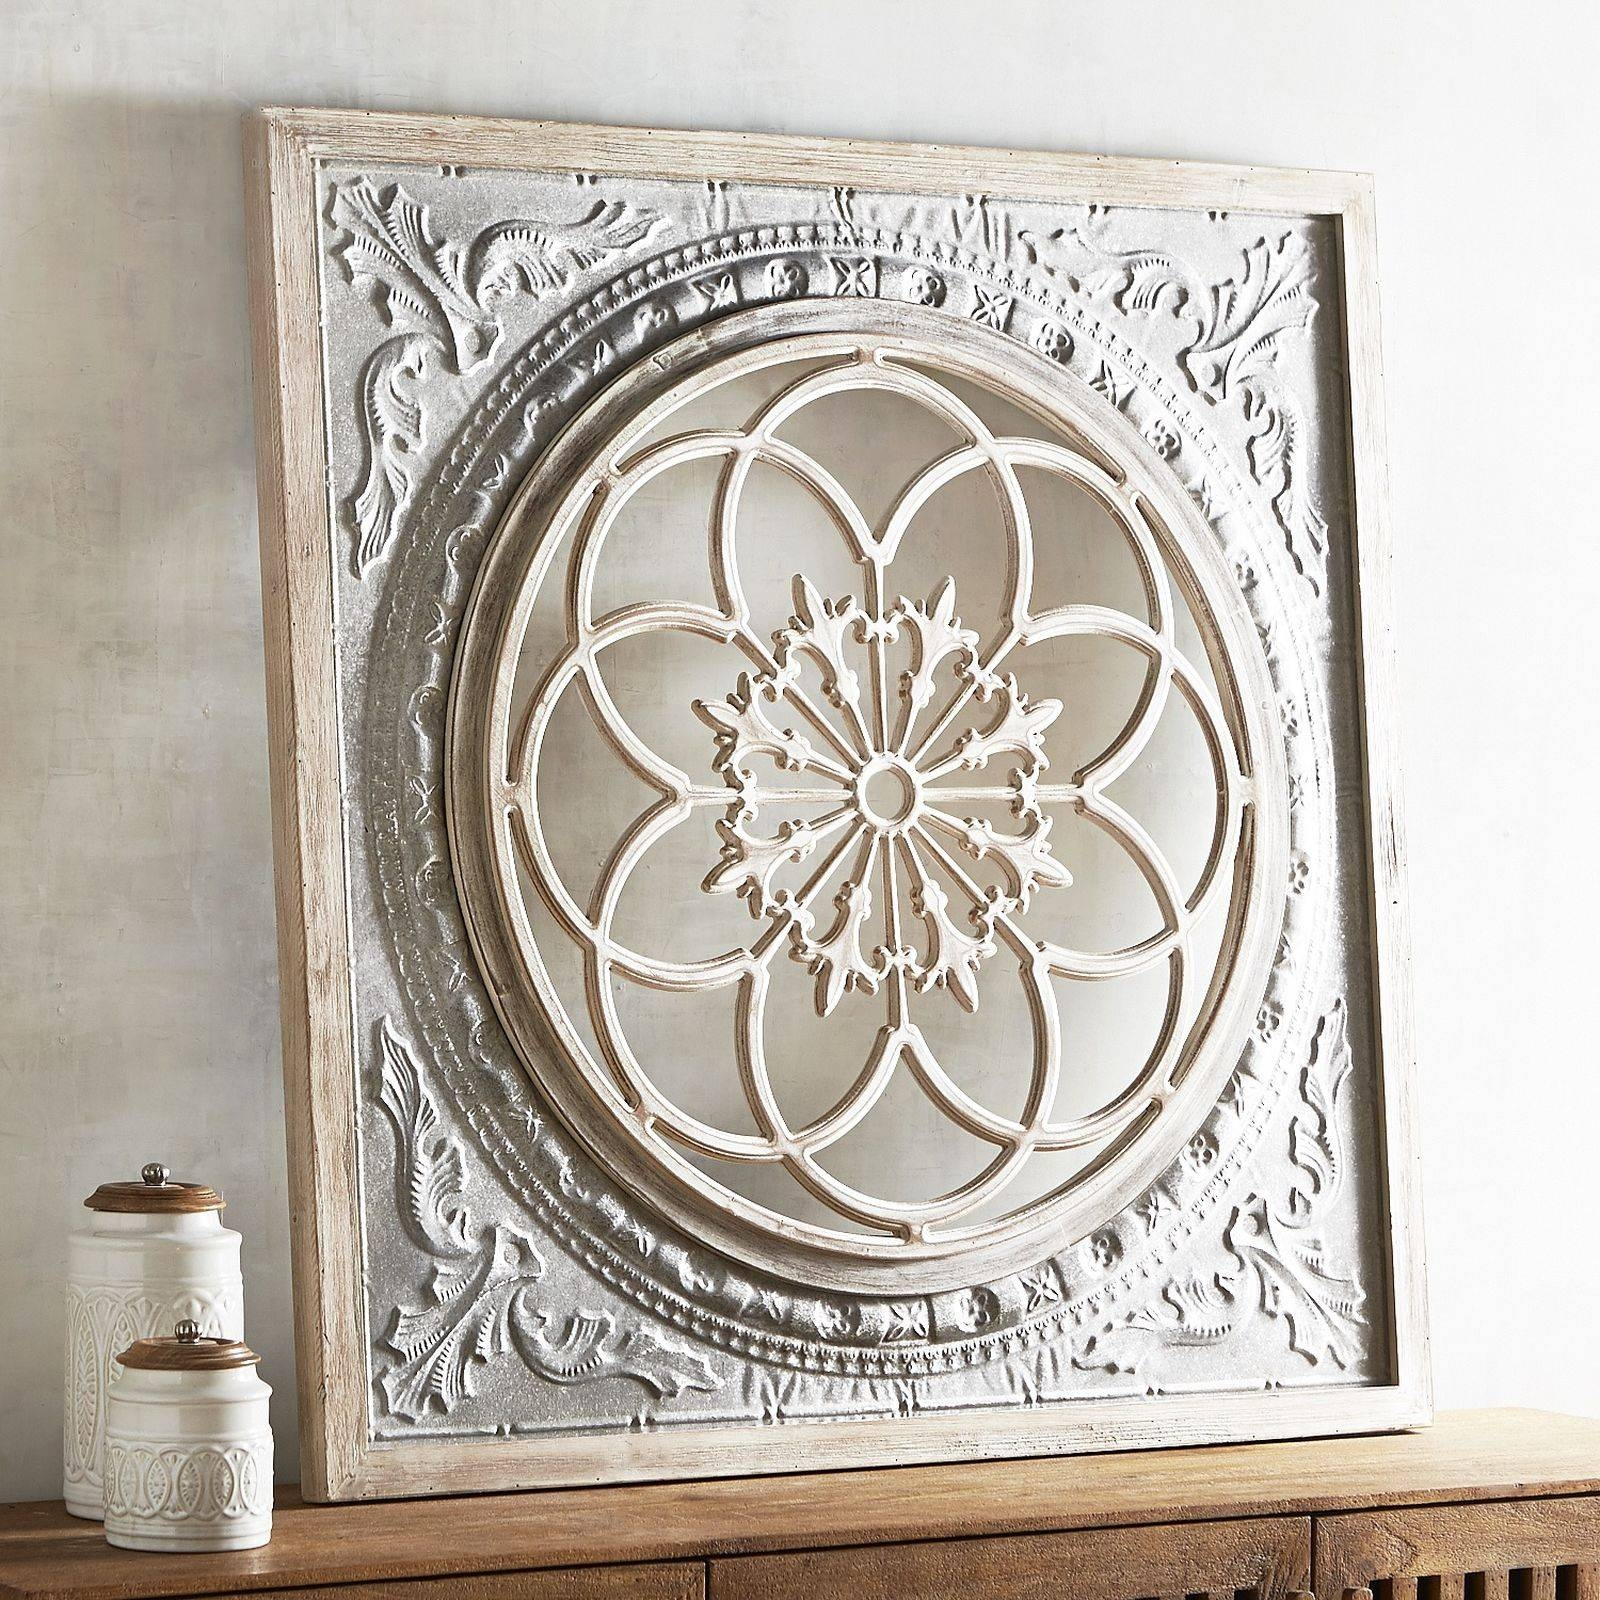 Wall Art: Astounding Medallion Wall Decor Wall Medallions Inside 2017 Hobby Lobby Metal Wall Art (View 13 of 20)